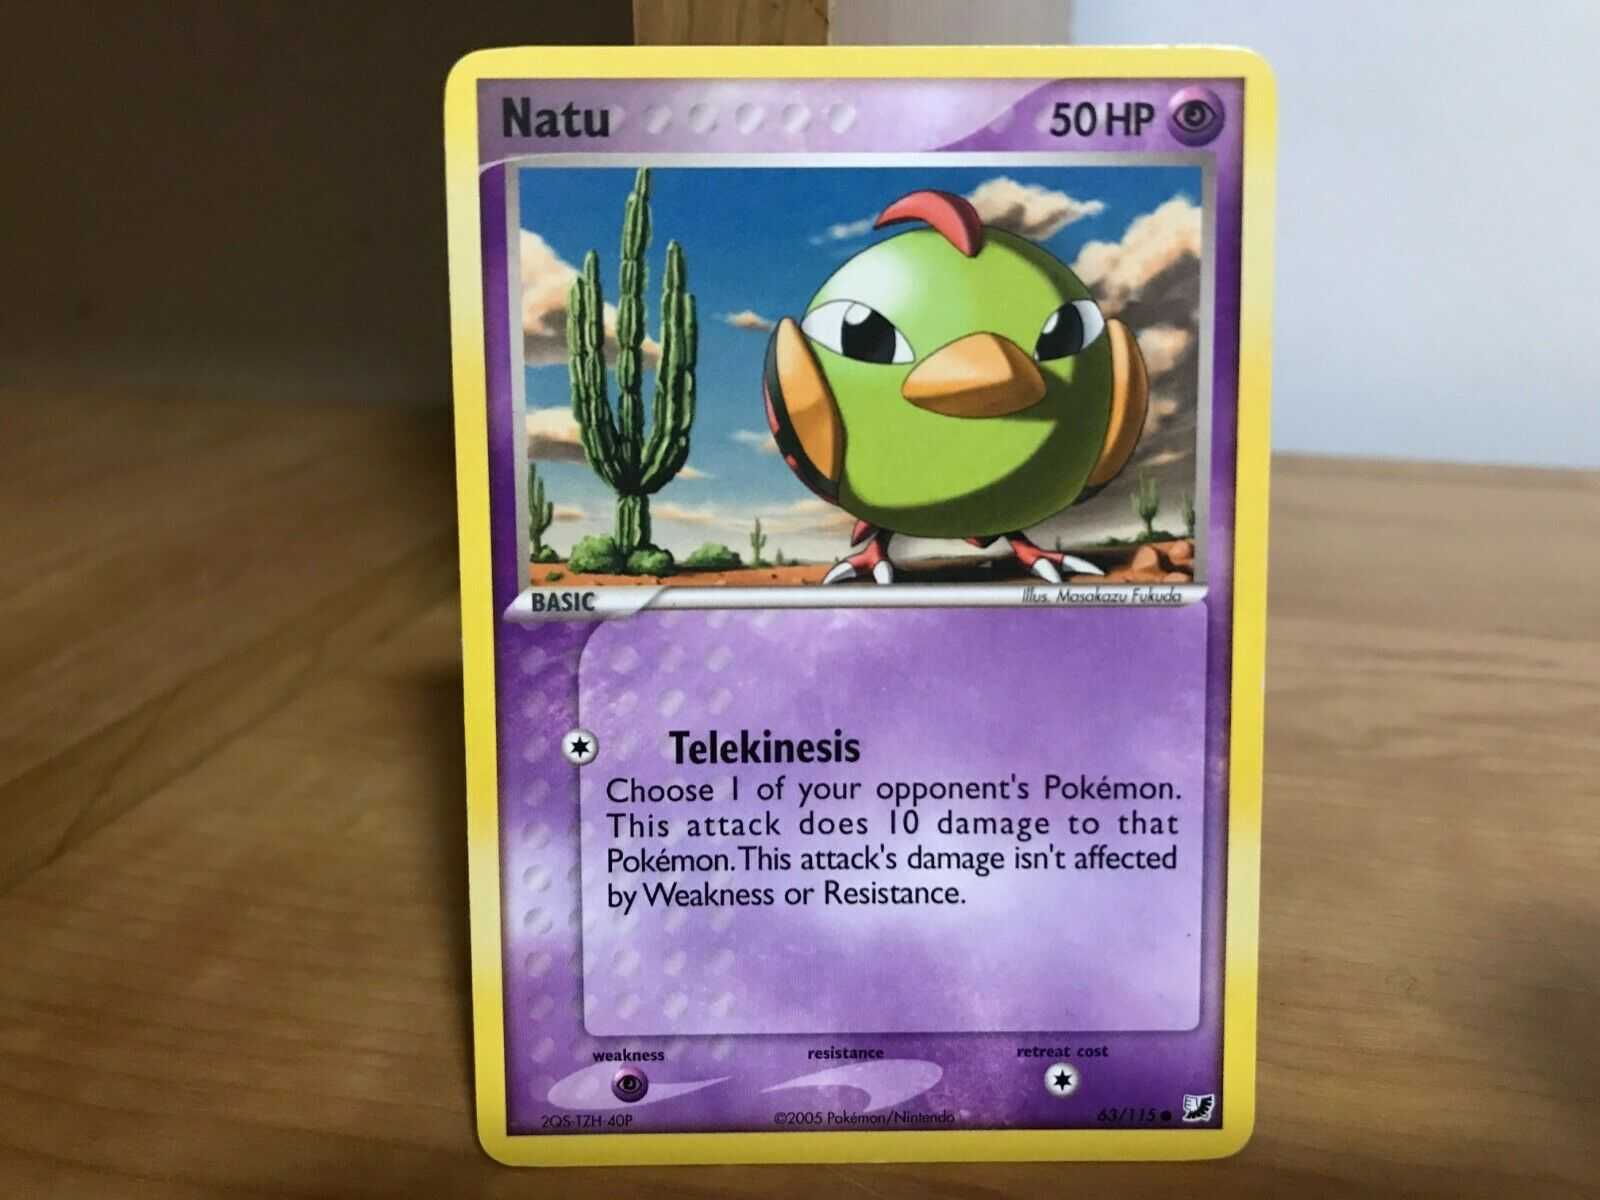 Pokemon Card Natu 63/115 EX Unseen Forces in Good Condition! - Image 1